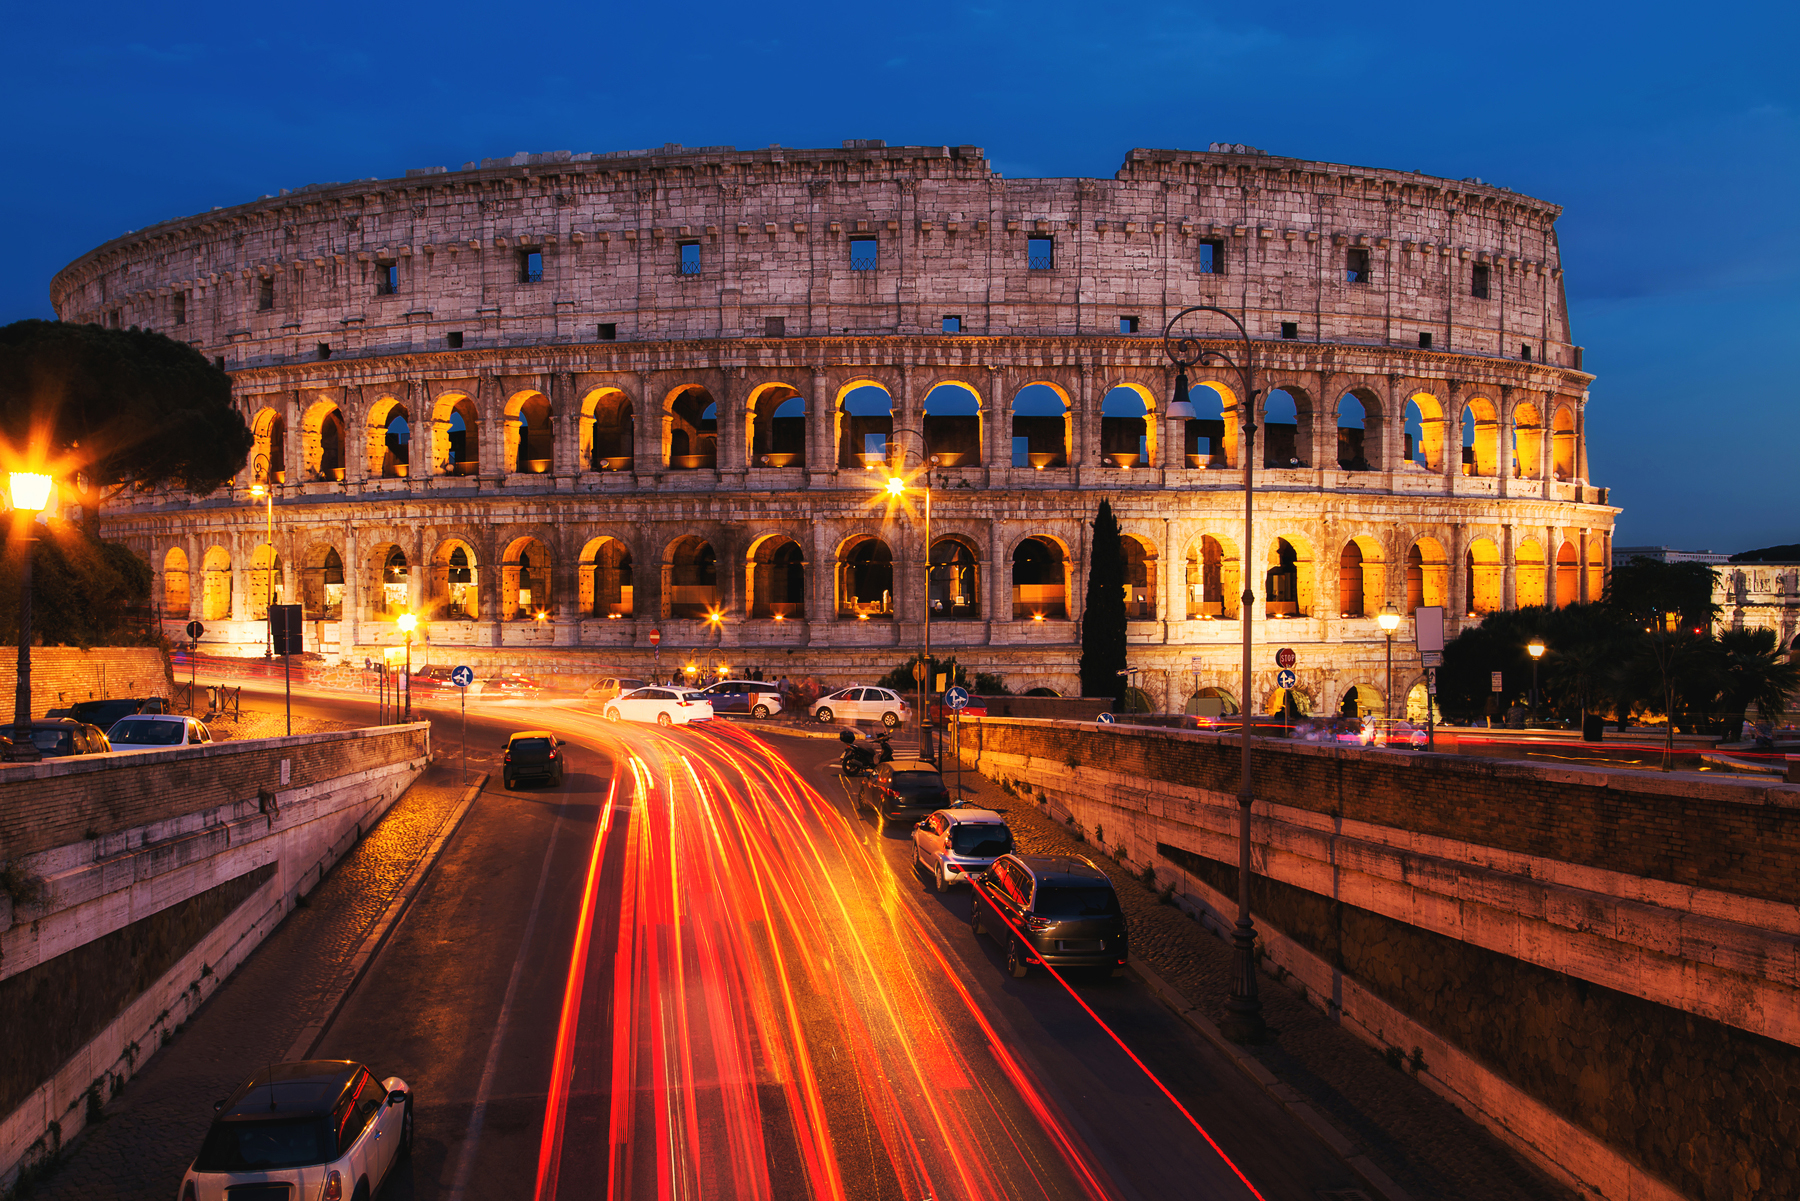 Colosseum. Rome, Italy, Italy